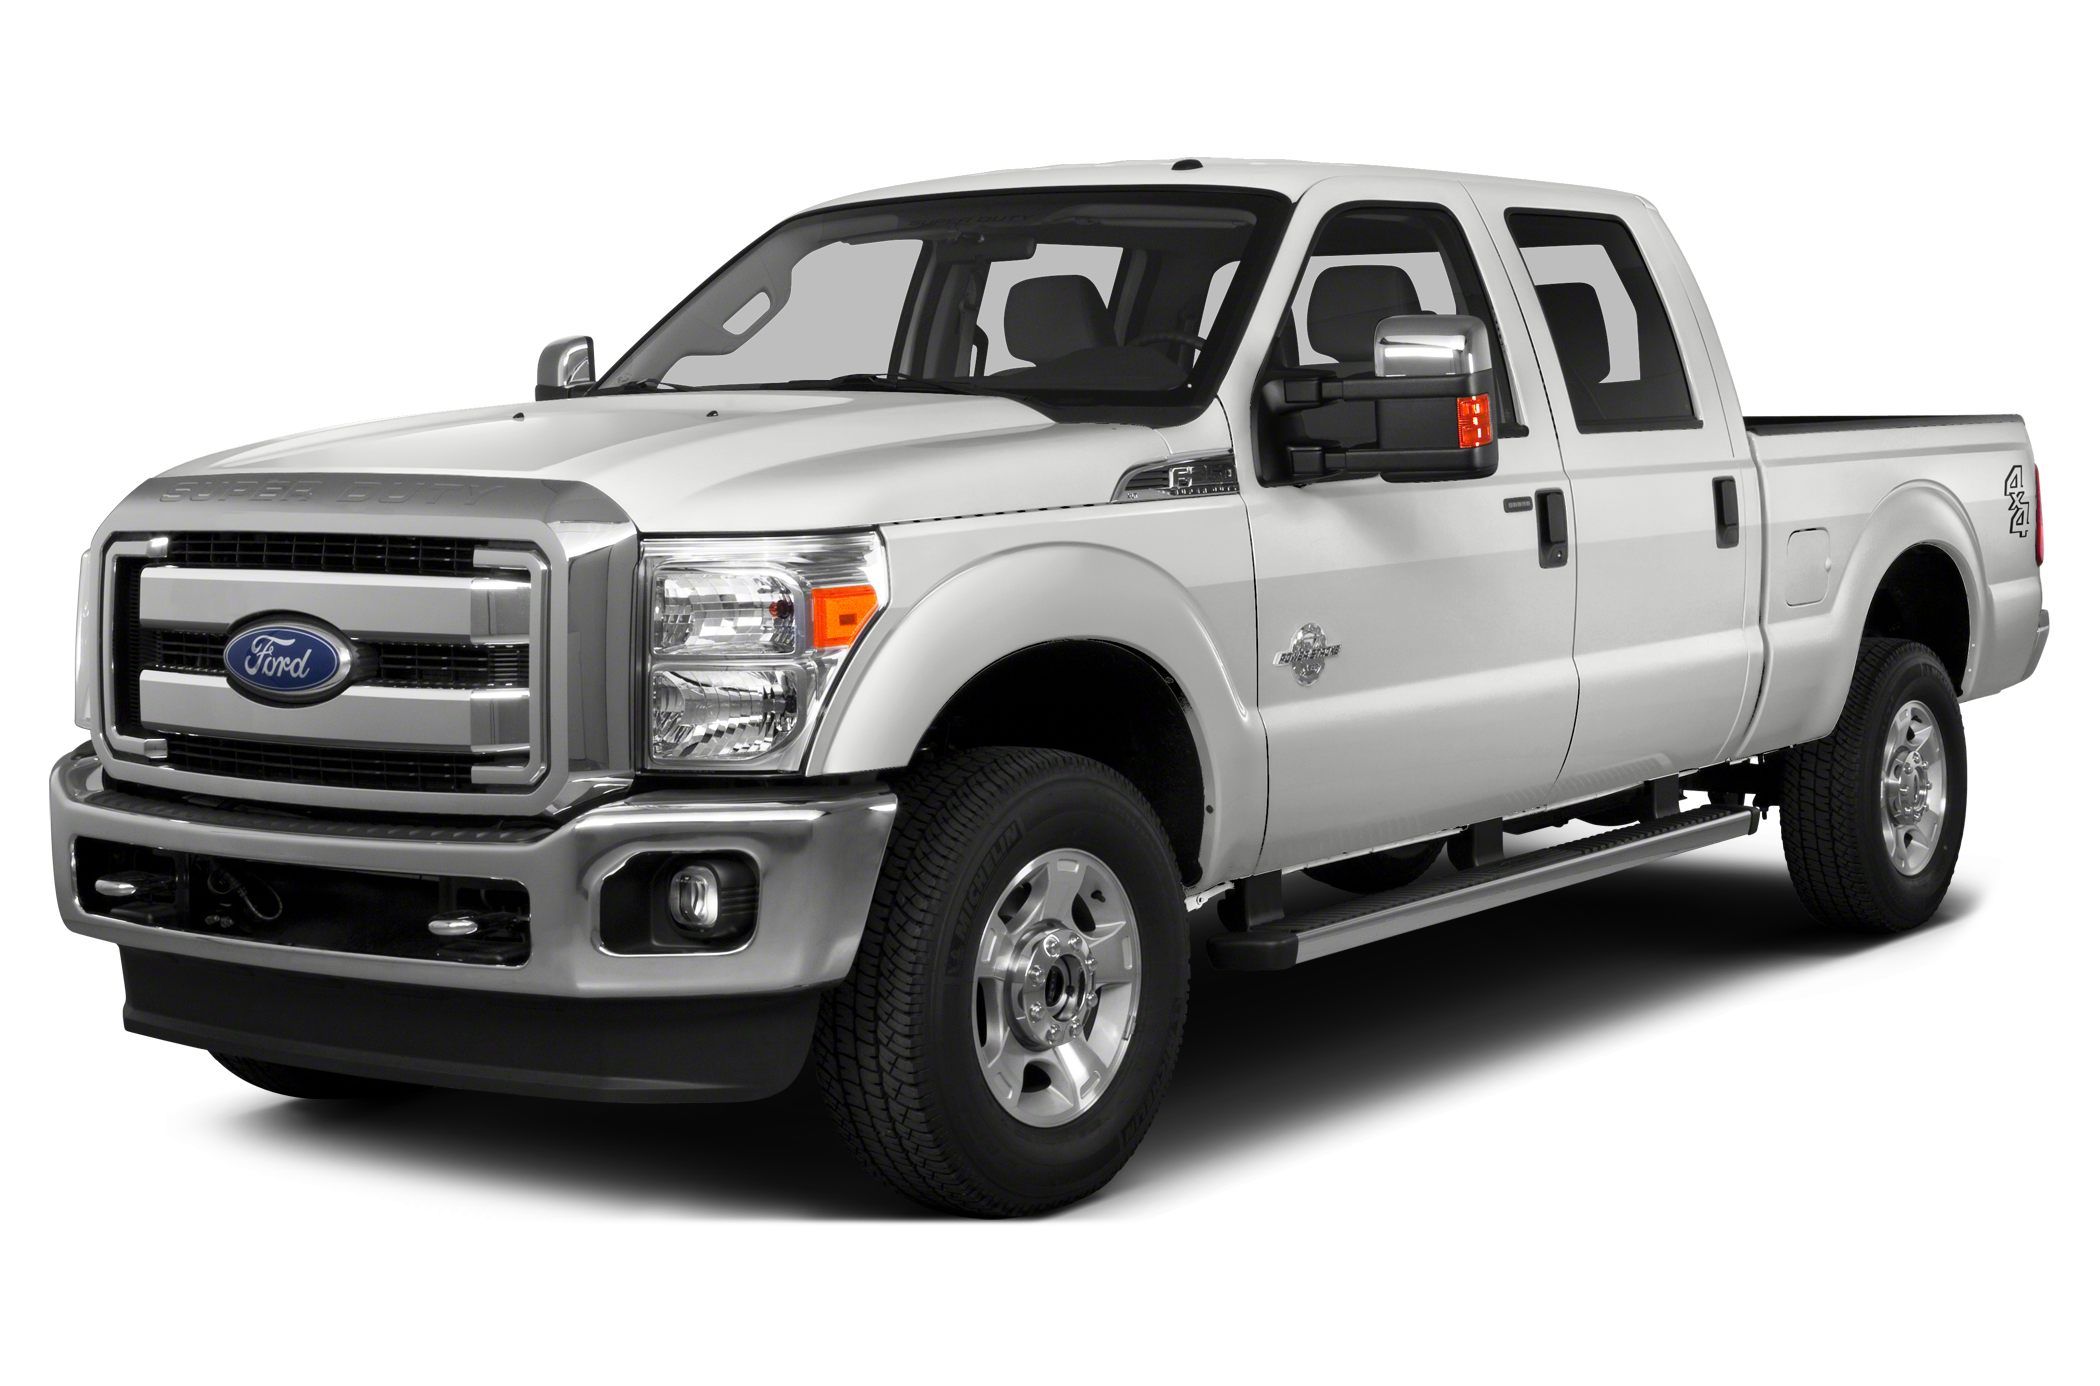 2015 Ford F-350 Super Duty You know your business and what it takes to grow its bottom line like